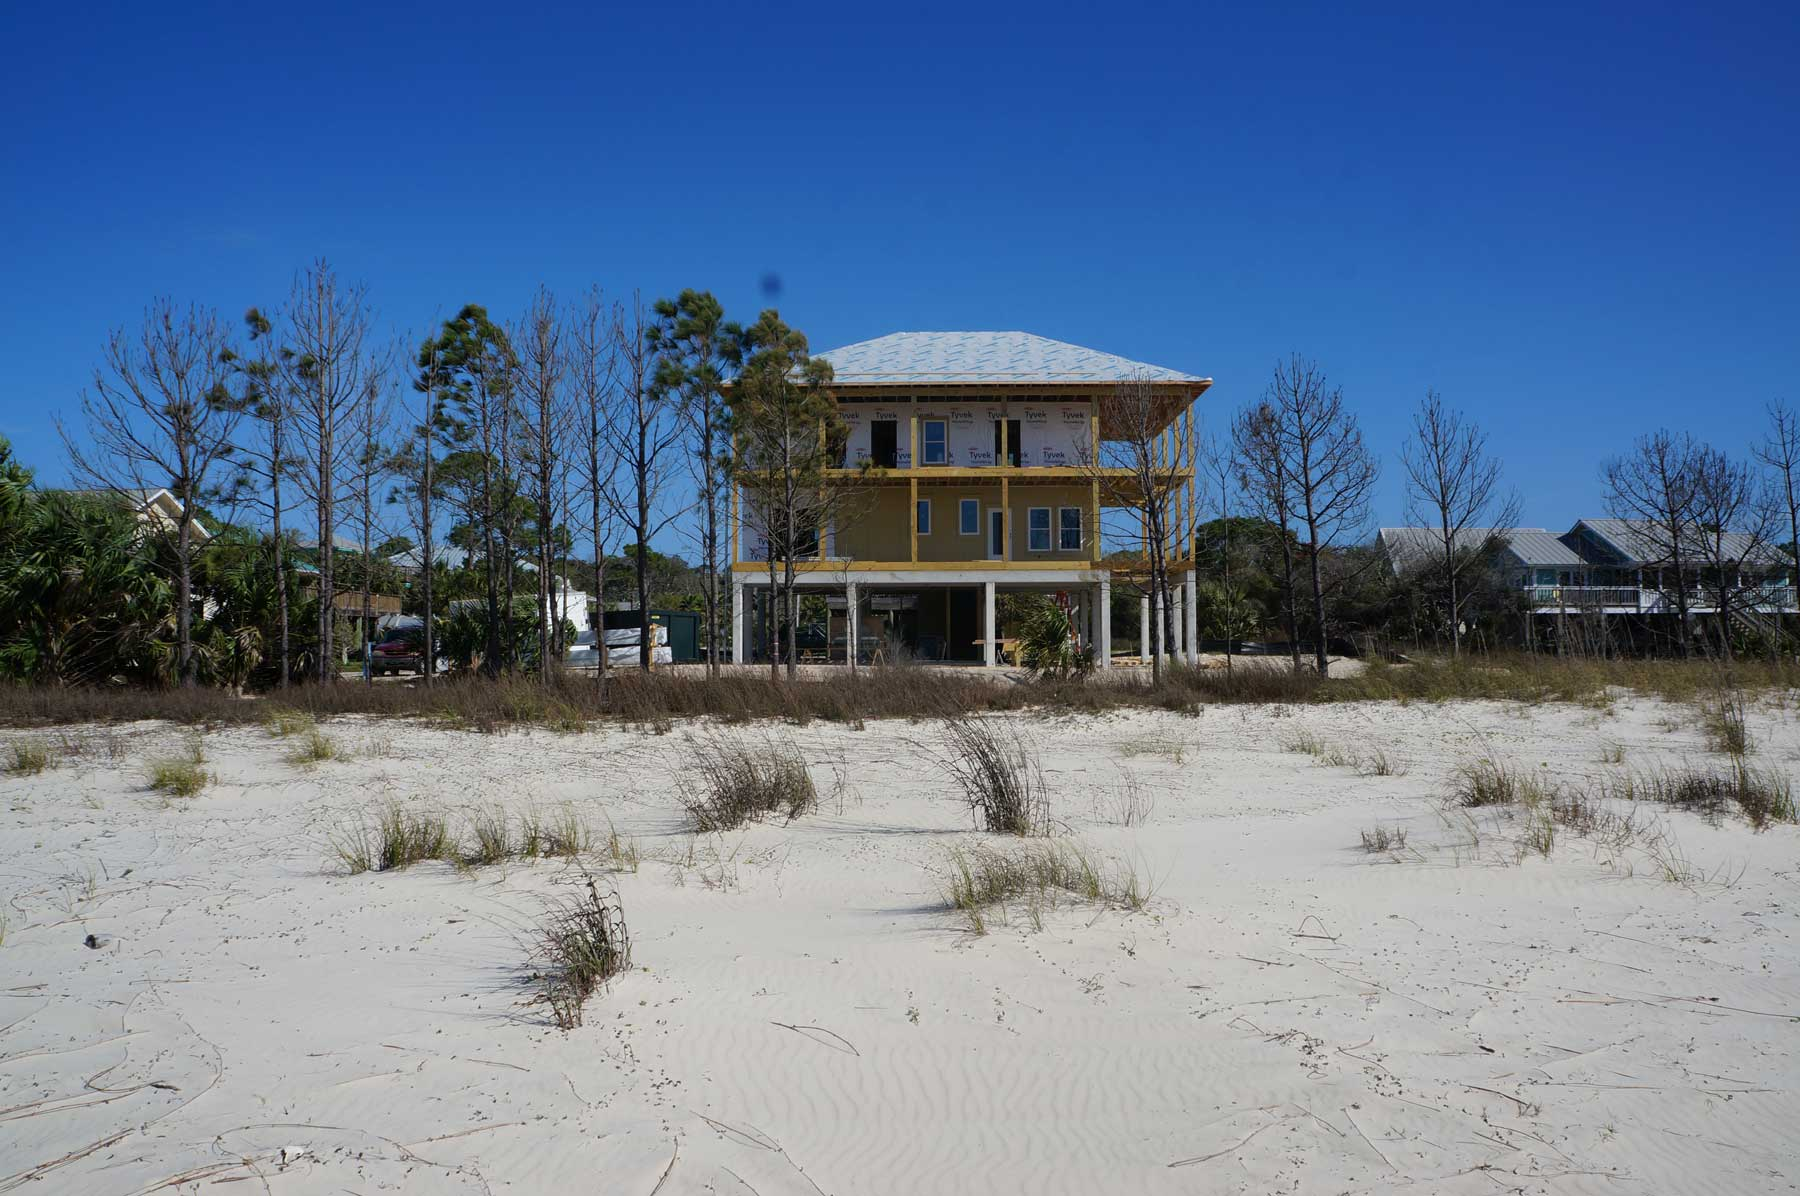 Sand in the front yard goes to beach.